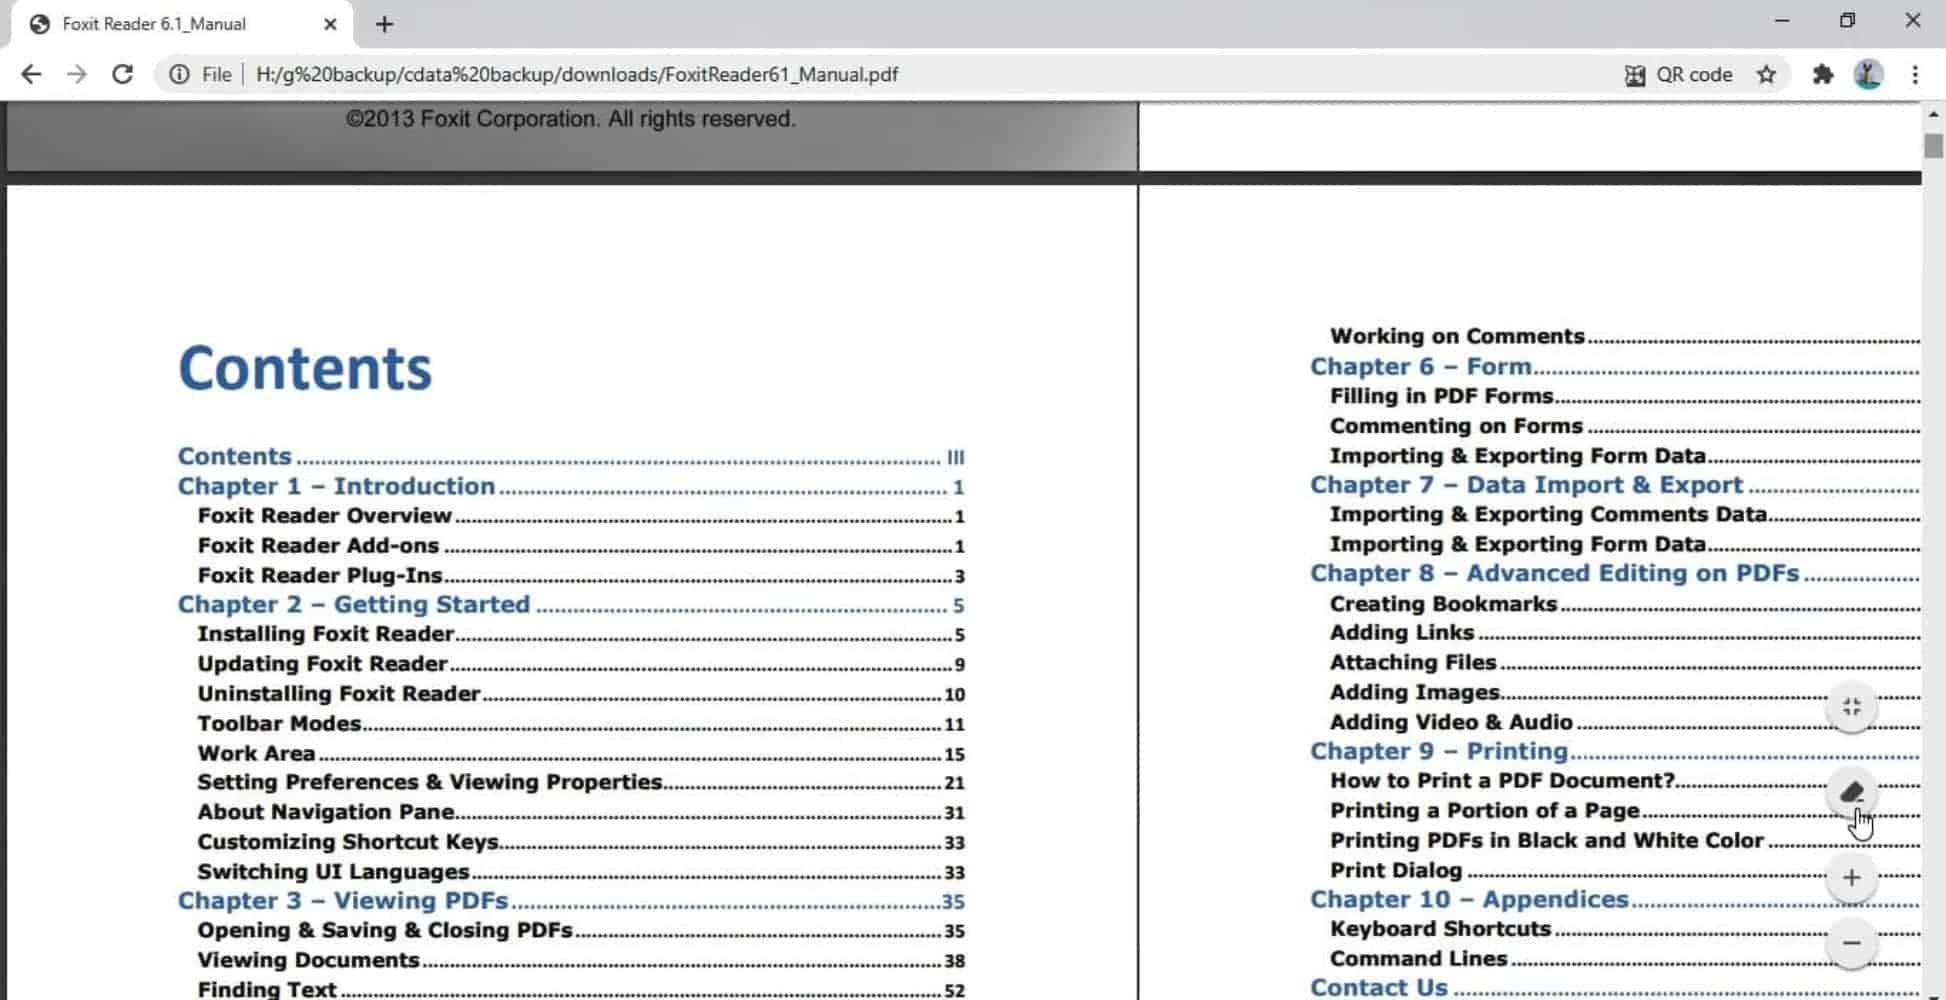 PDF in two page view Chrome from TechDows